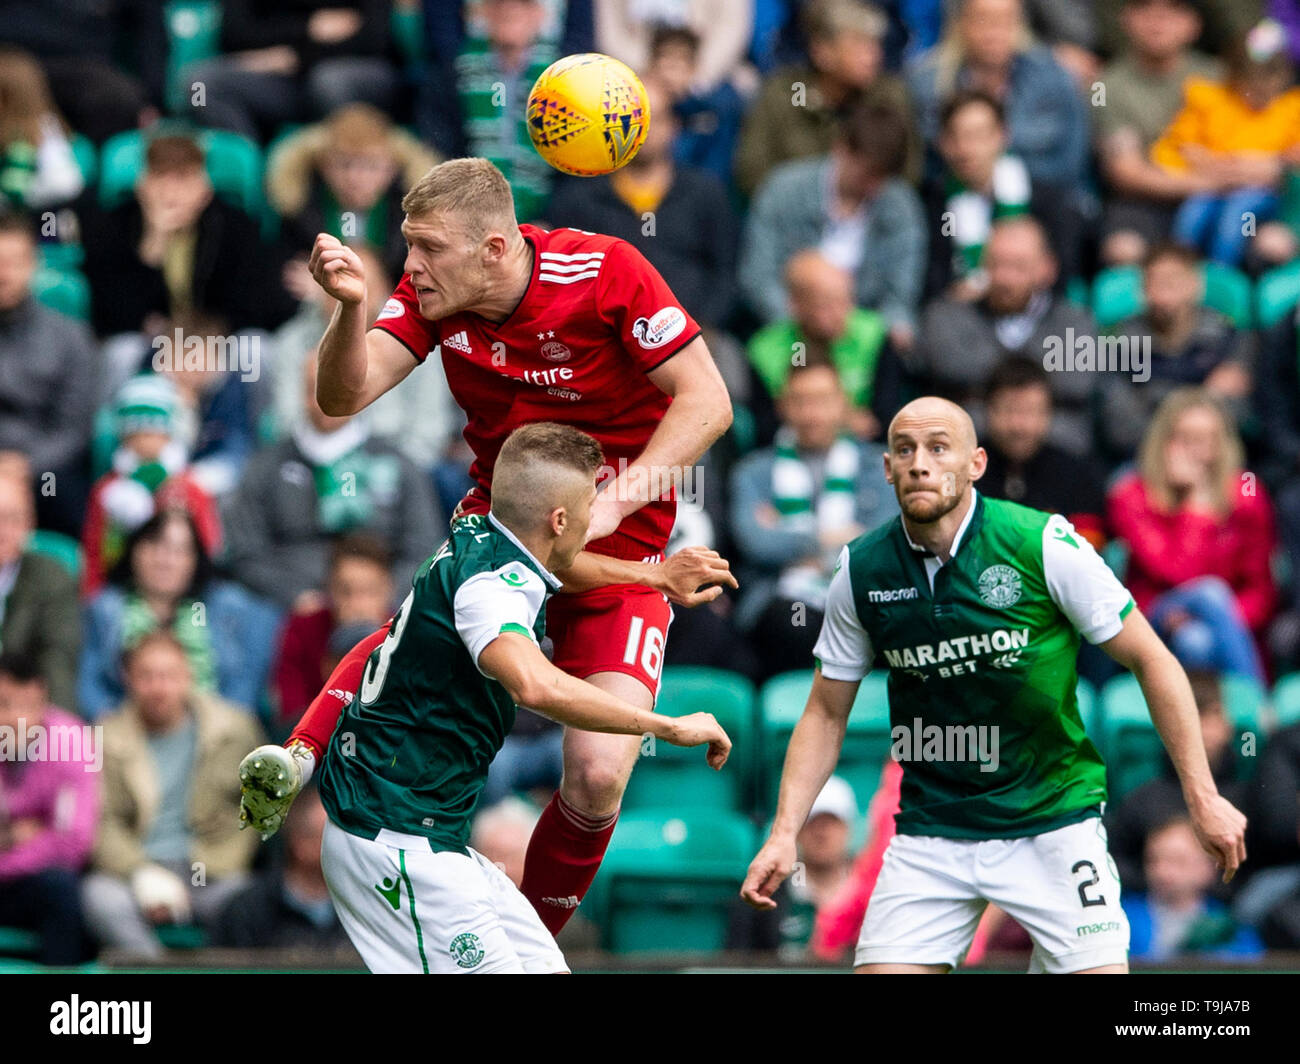 Edinburgh, Scotland, UK. 19th May, 2019.  Pic shows: Aberdeen midfielder, Sam Cosgrove, wins the ball from Hibs' left midfielder, Fraser Murray, during the second half as Hibs play host to Aberdeen at Easter Road Stadium, Edinburgh Credit: Ian Jacobs/Alamy Live News Stock Photo